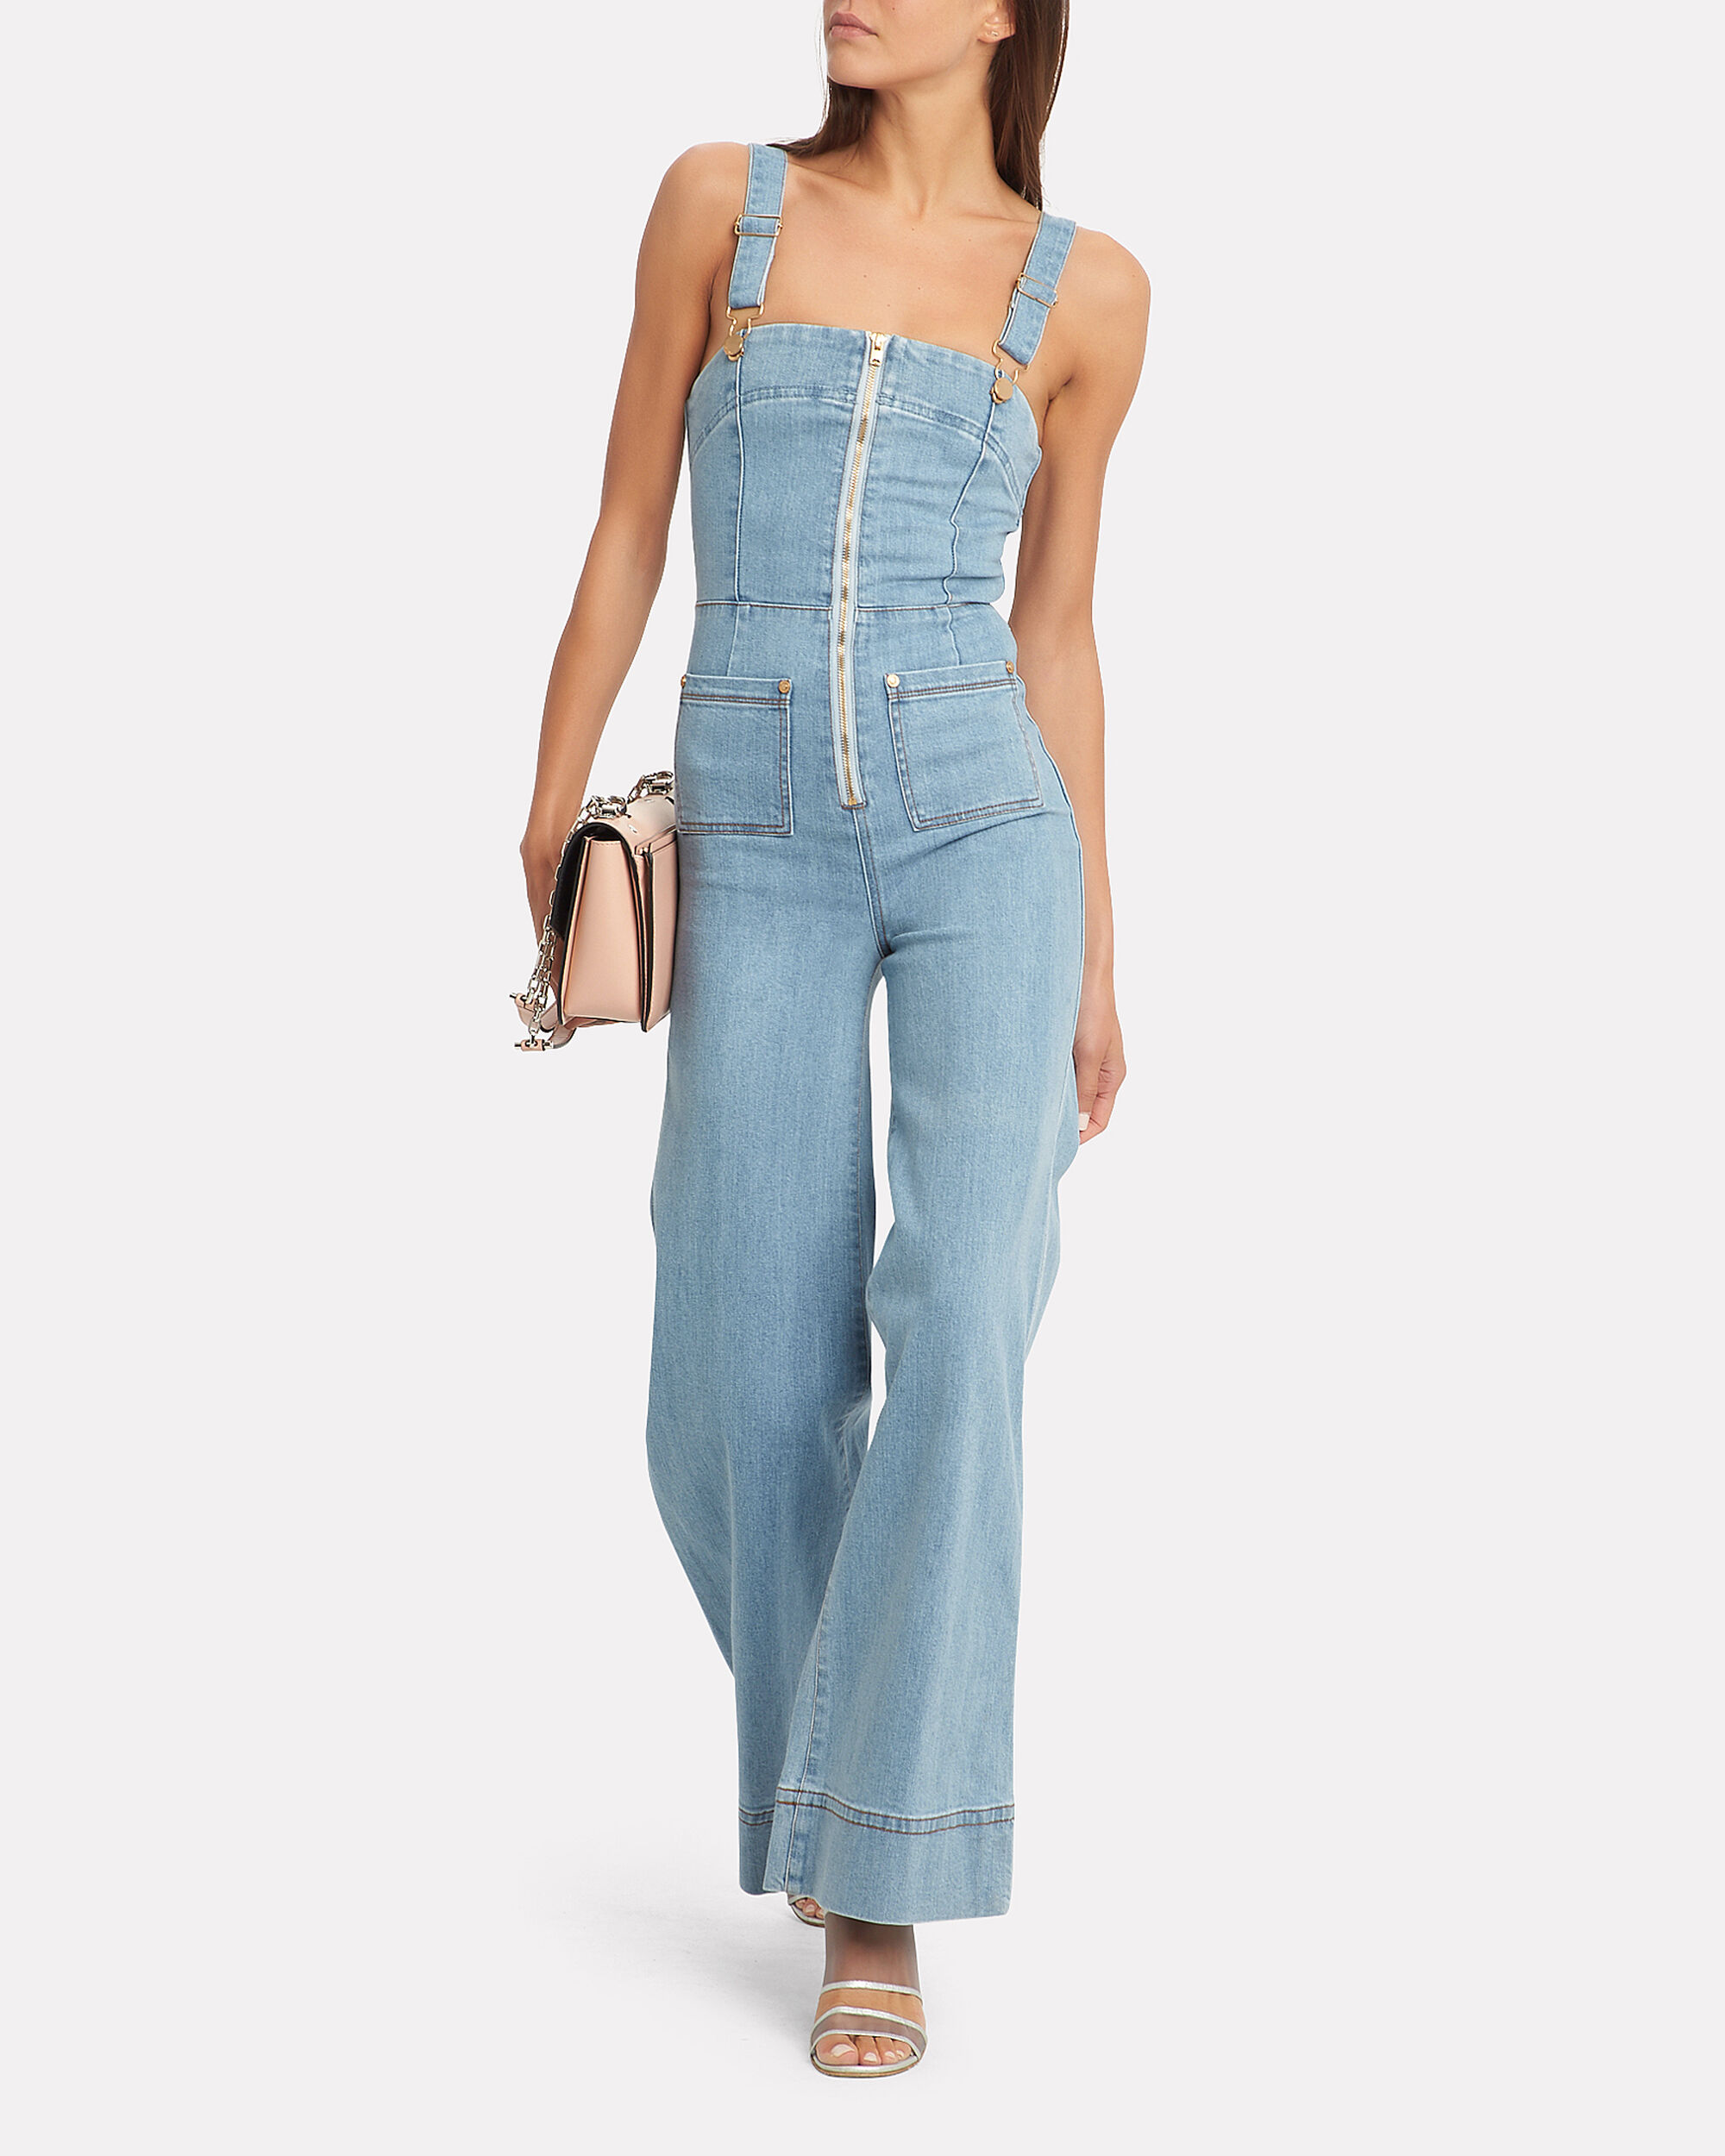 Quincy Overalls, LIGHT BLUE DENIM, hi-res